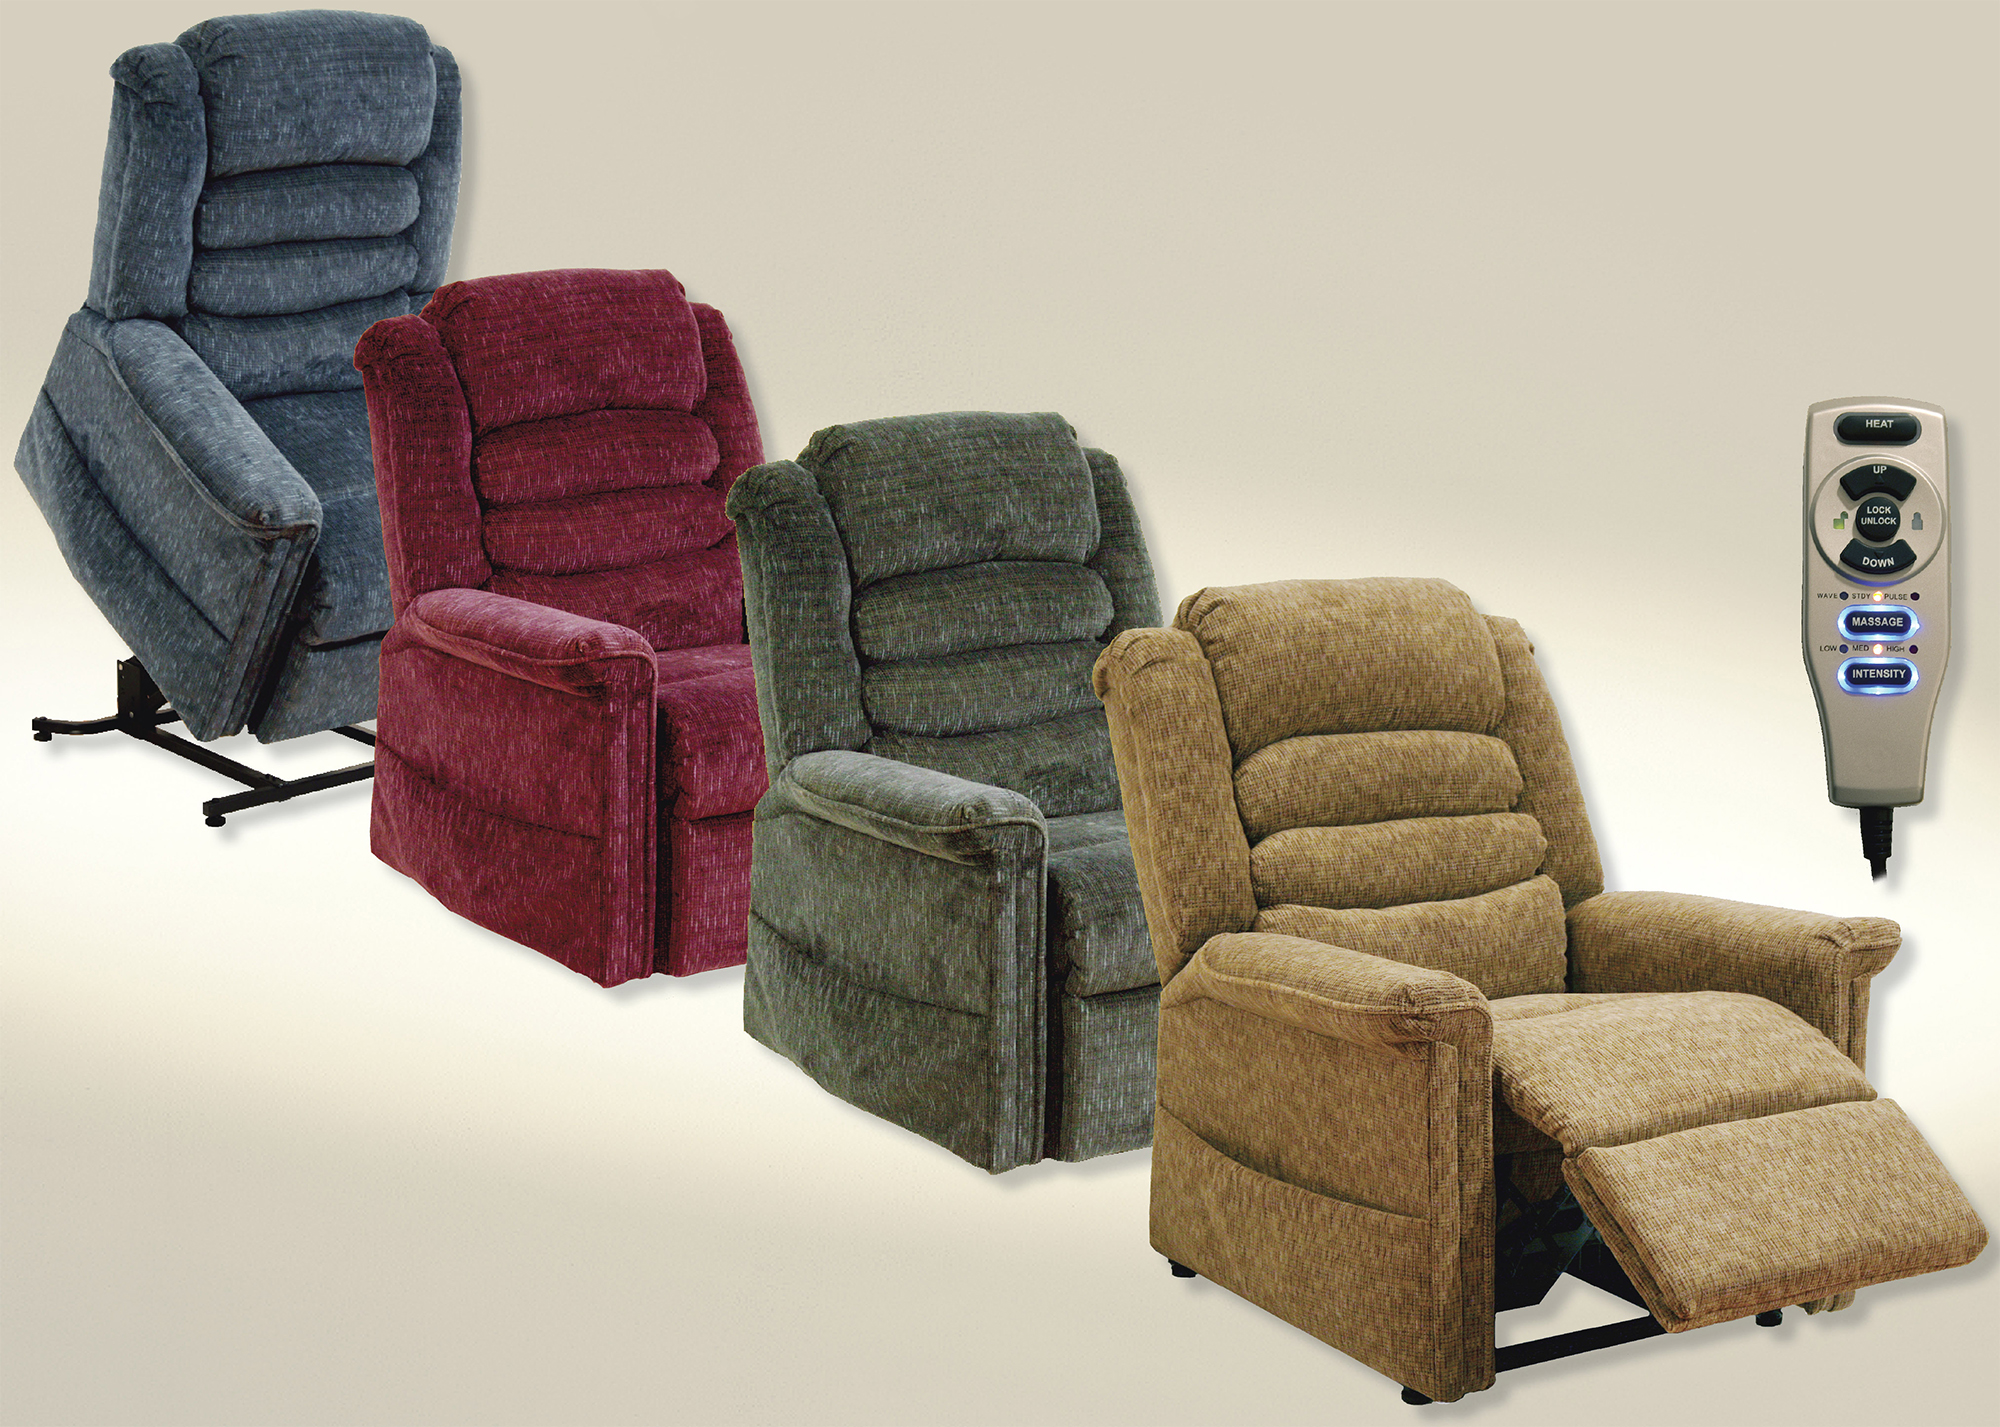 catnapper soother lift chair recliner - Catnapper Recliner